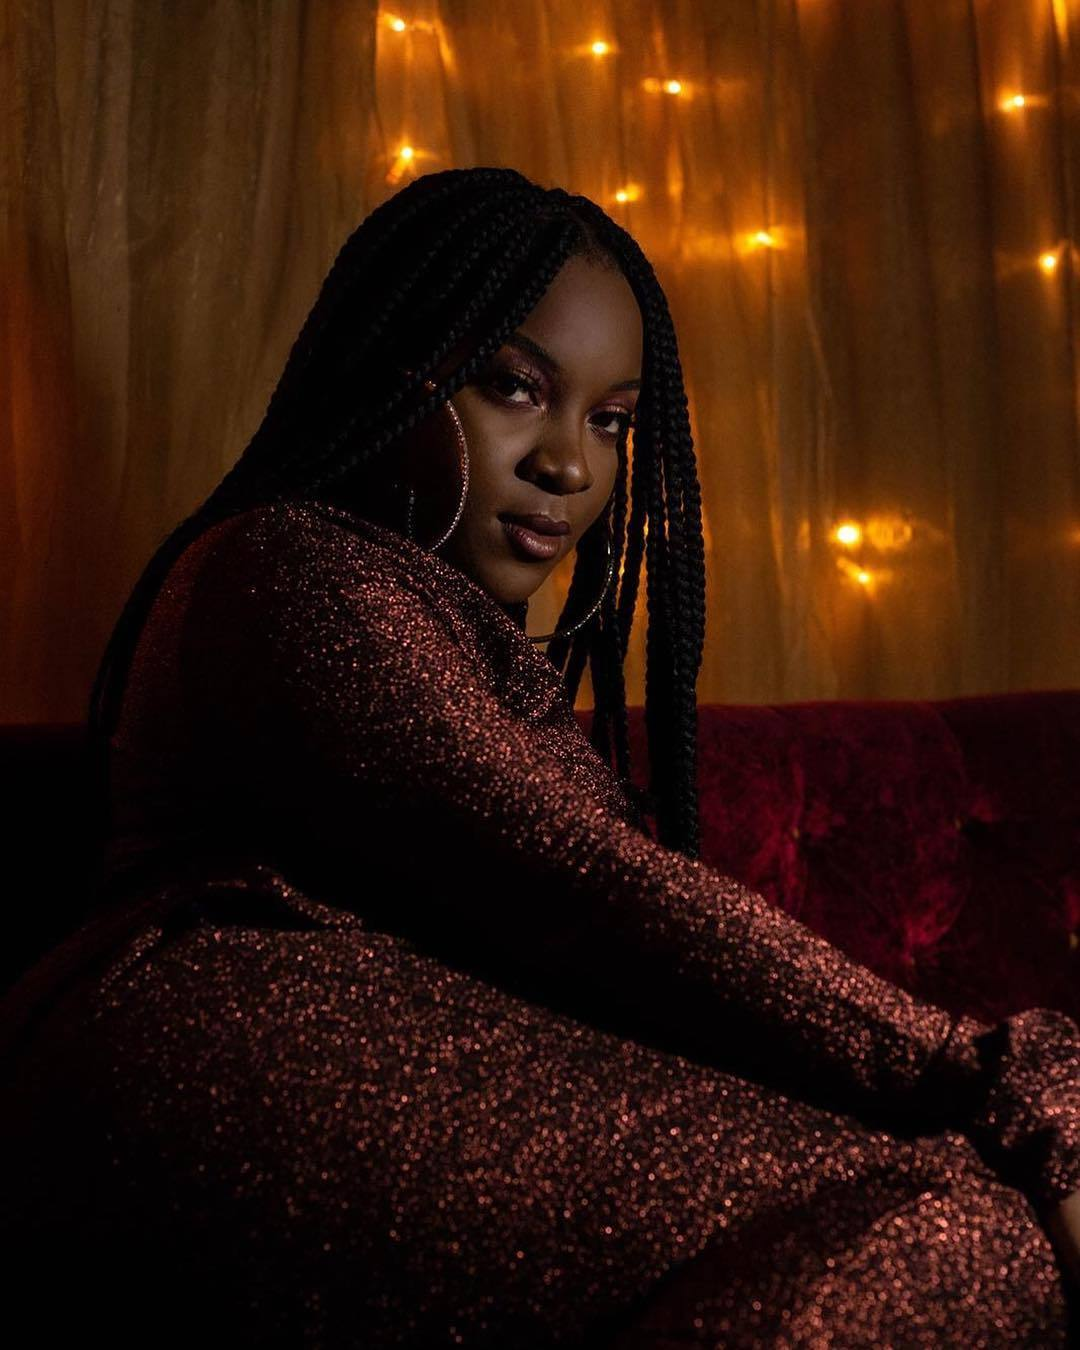 Ray BLK's 'Empress' Project Is Essential Listening